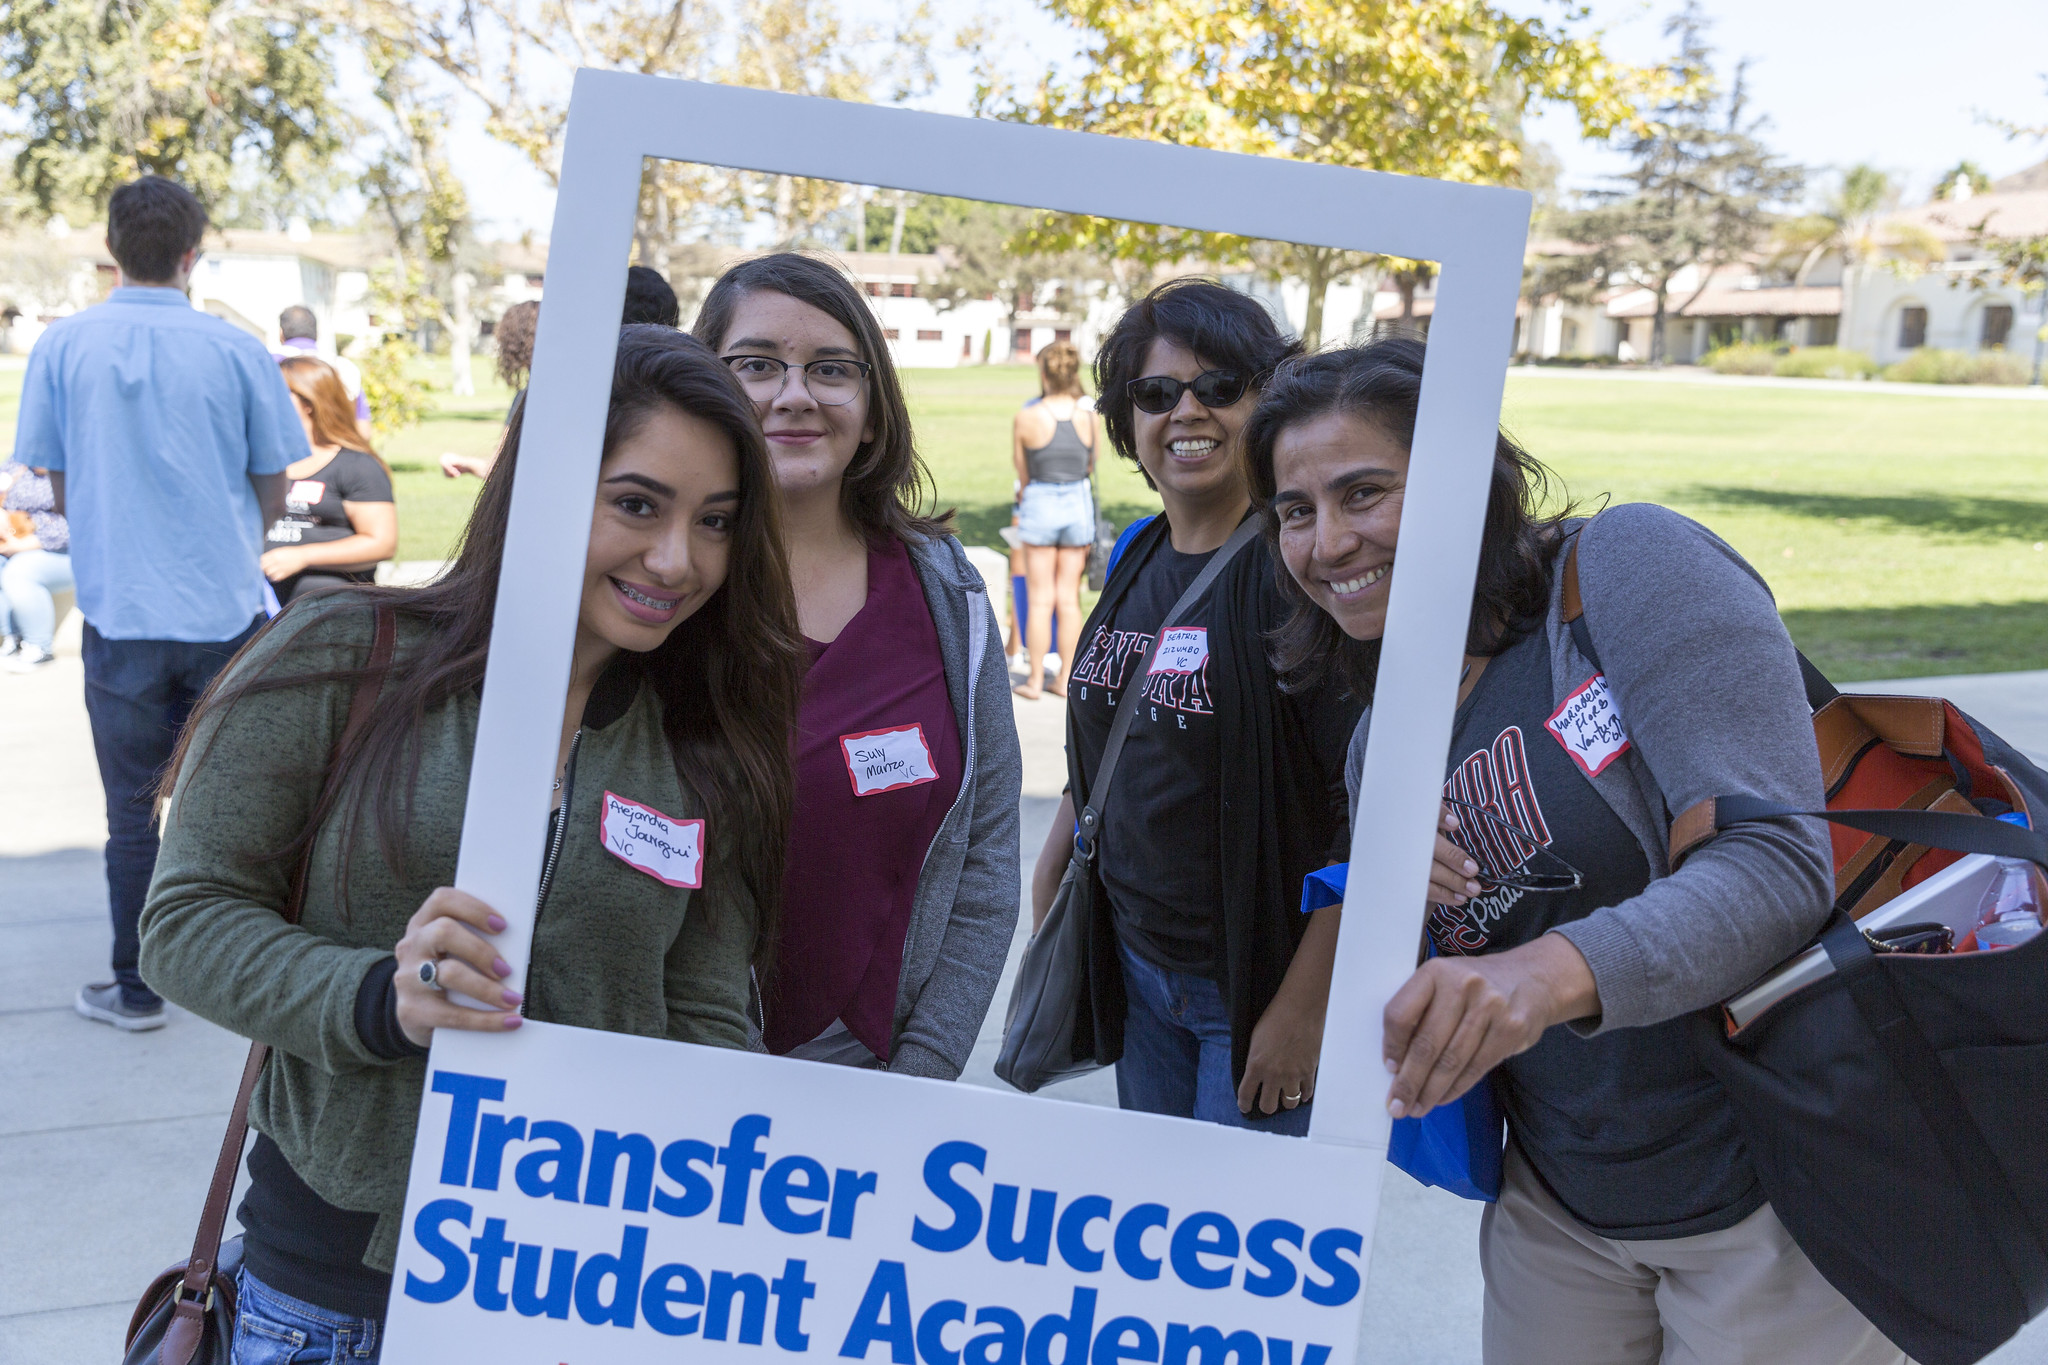 Two young women and their mothers hold a sign that reads Transfer Student Success Academy.